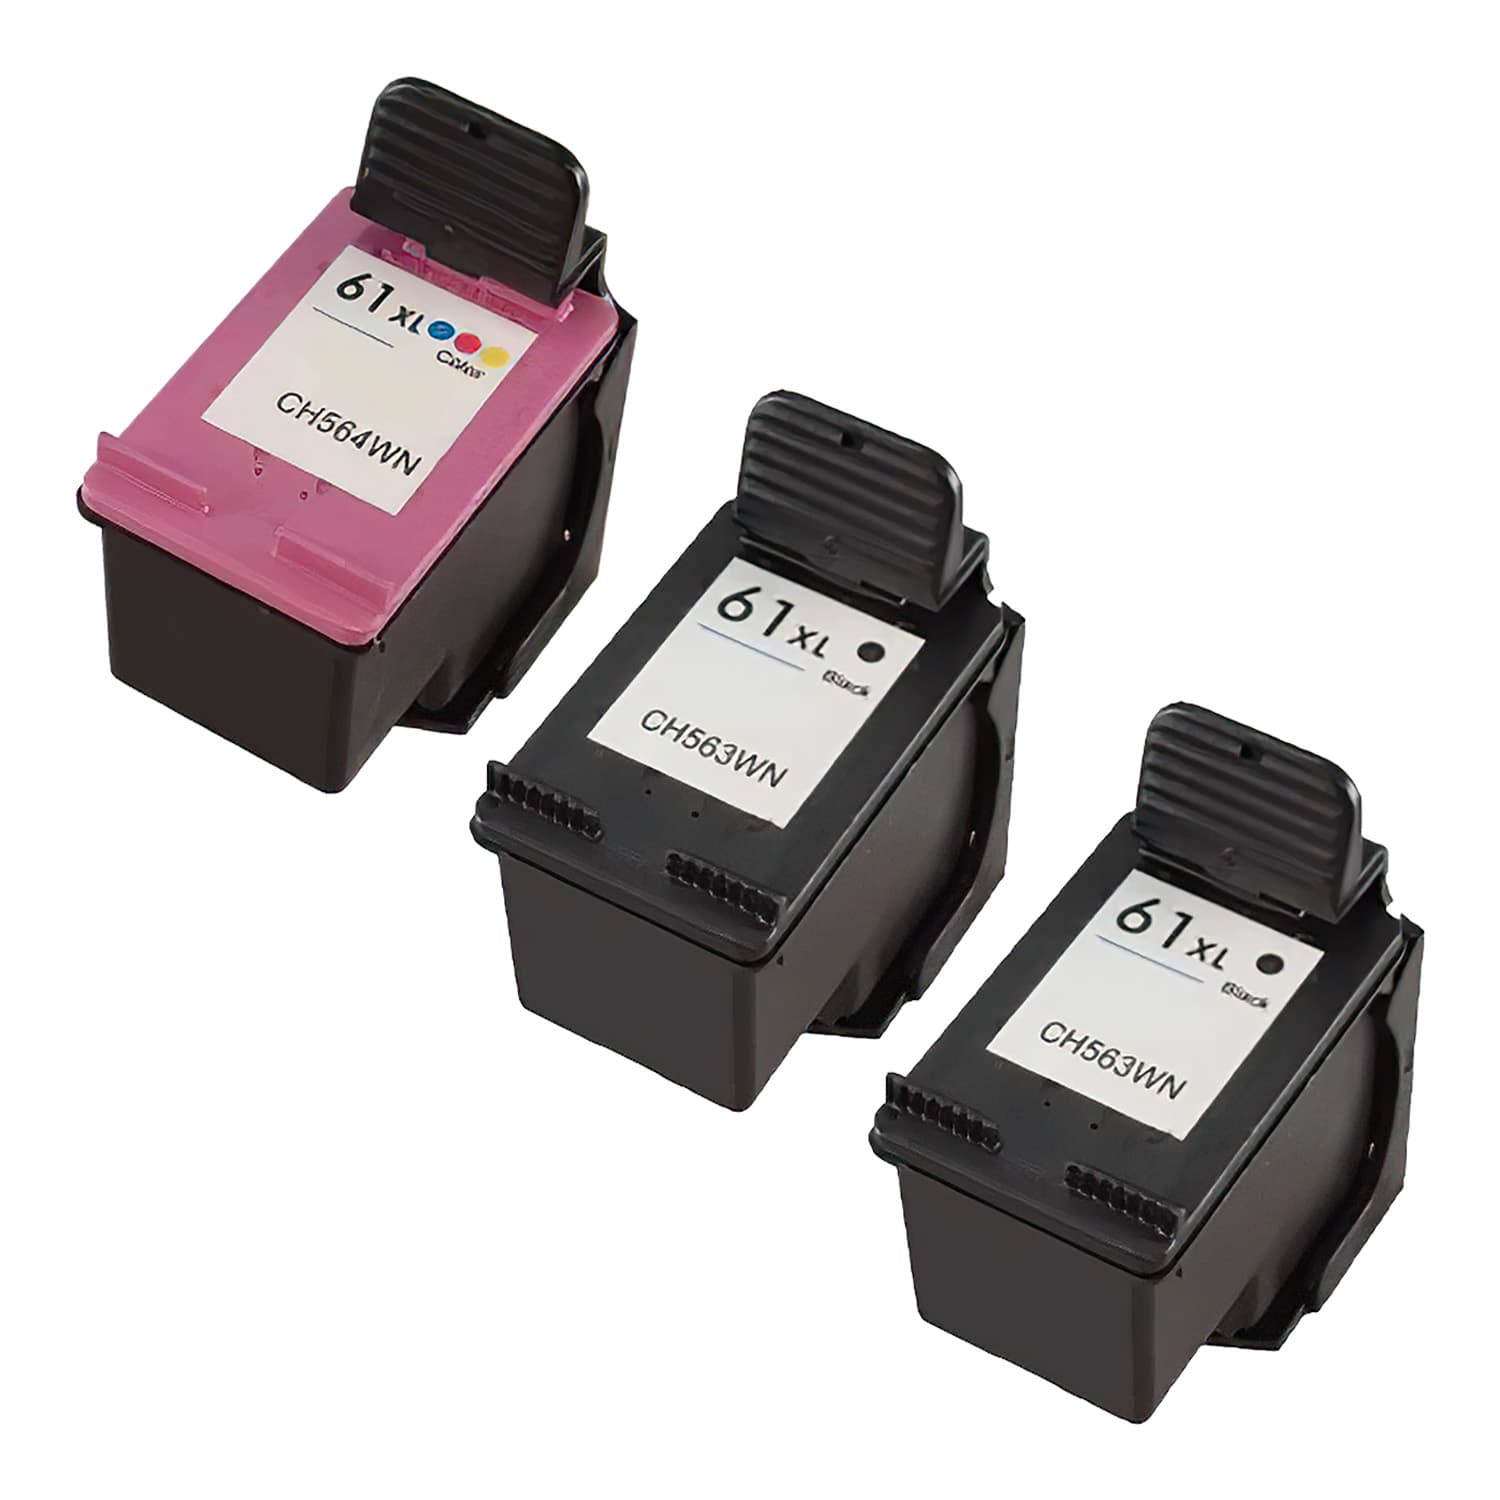 Remanufactured HP 61XL Inkjet High Capacity Pack - 3 Cartridges